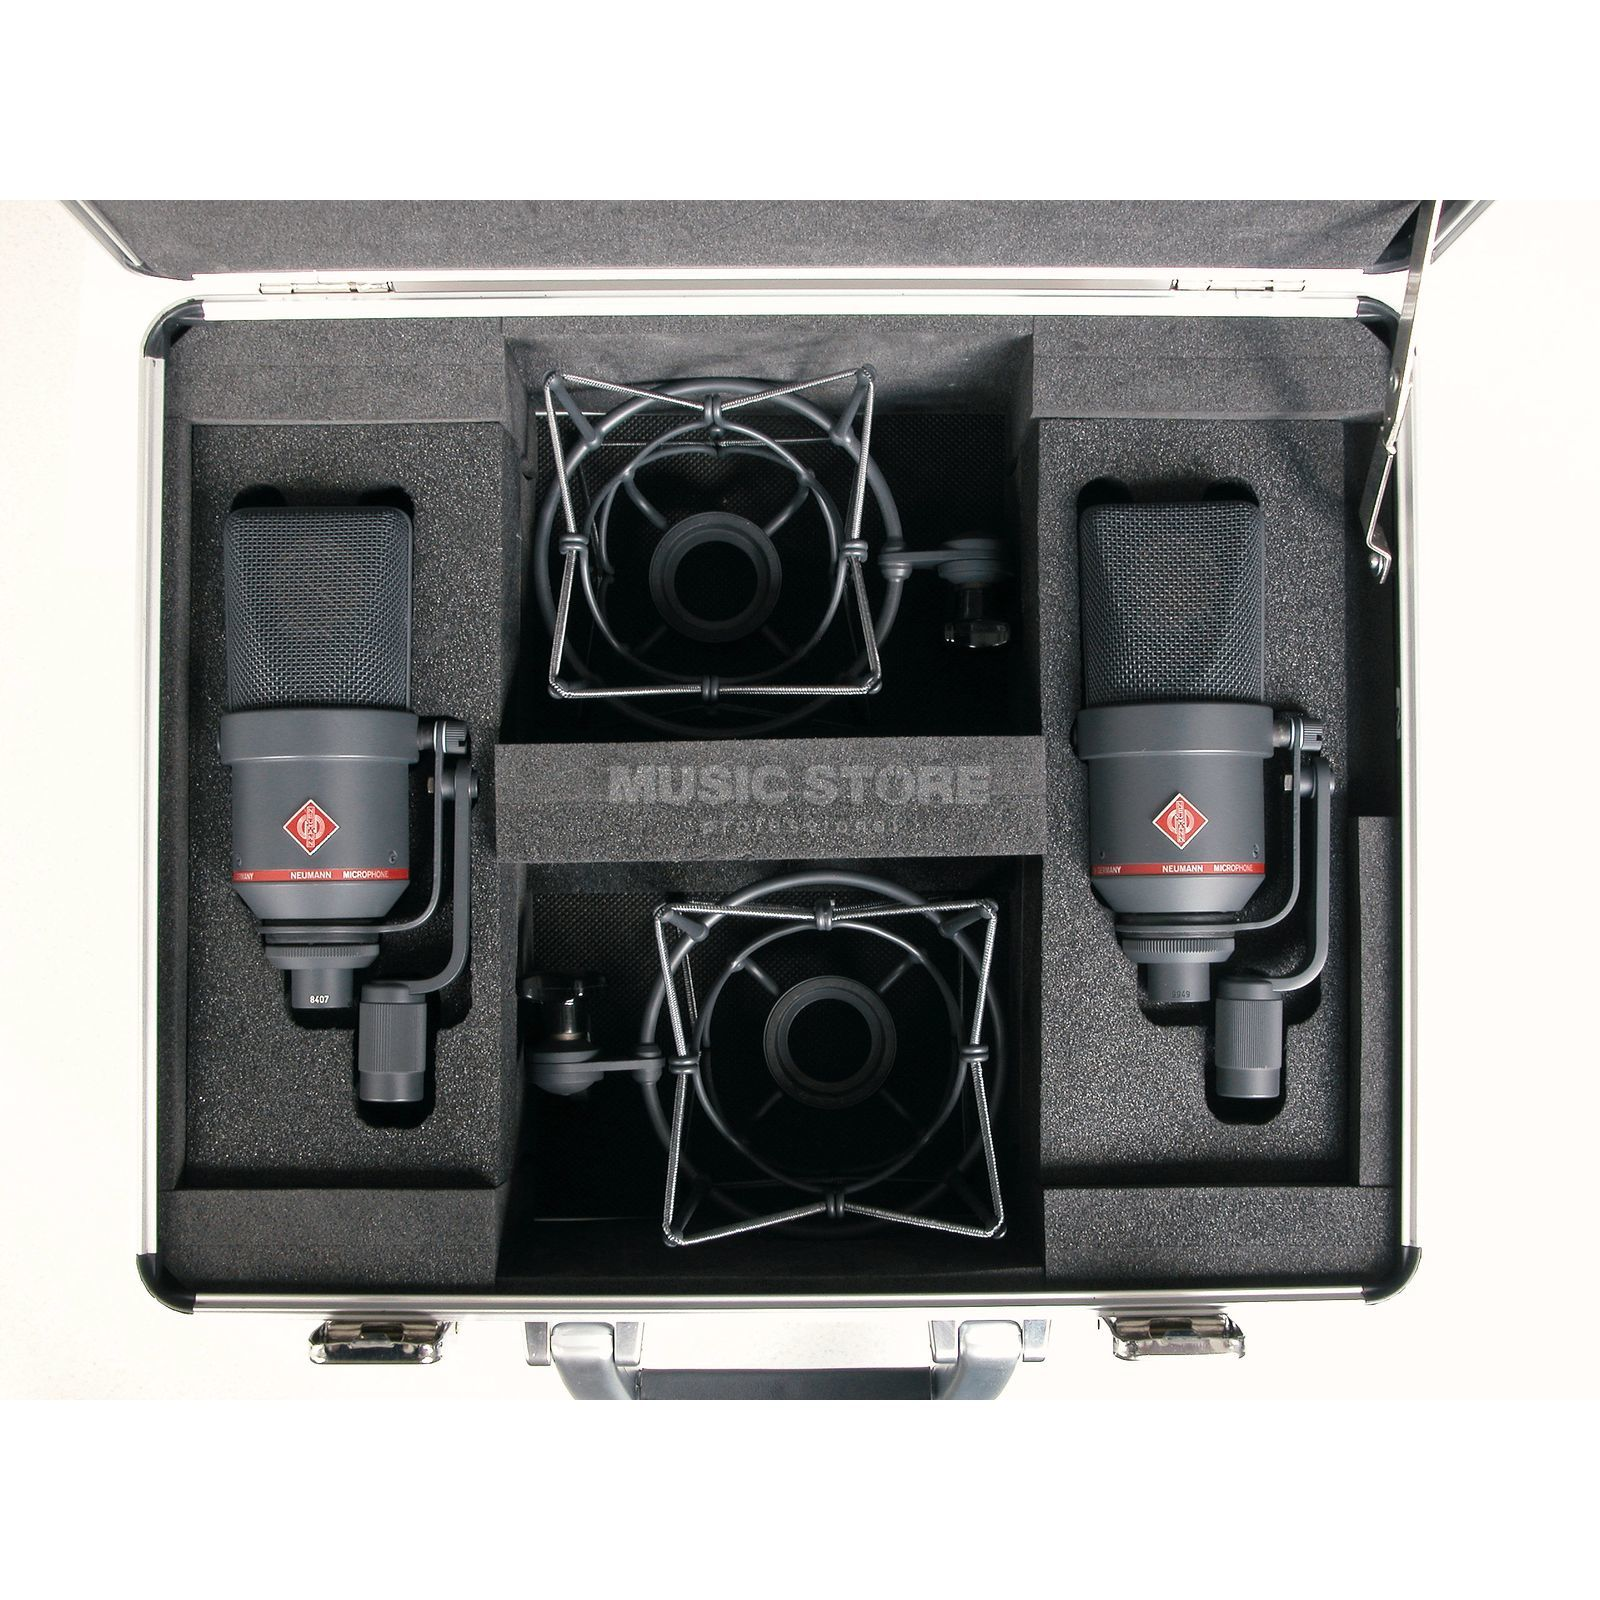 Neumann TLM 170 R mt Stereo Set Product Image